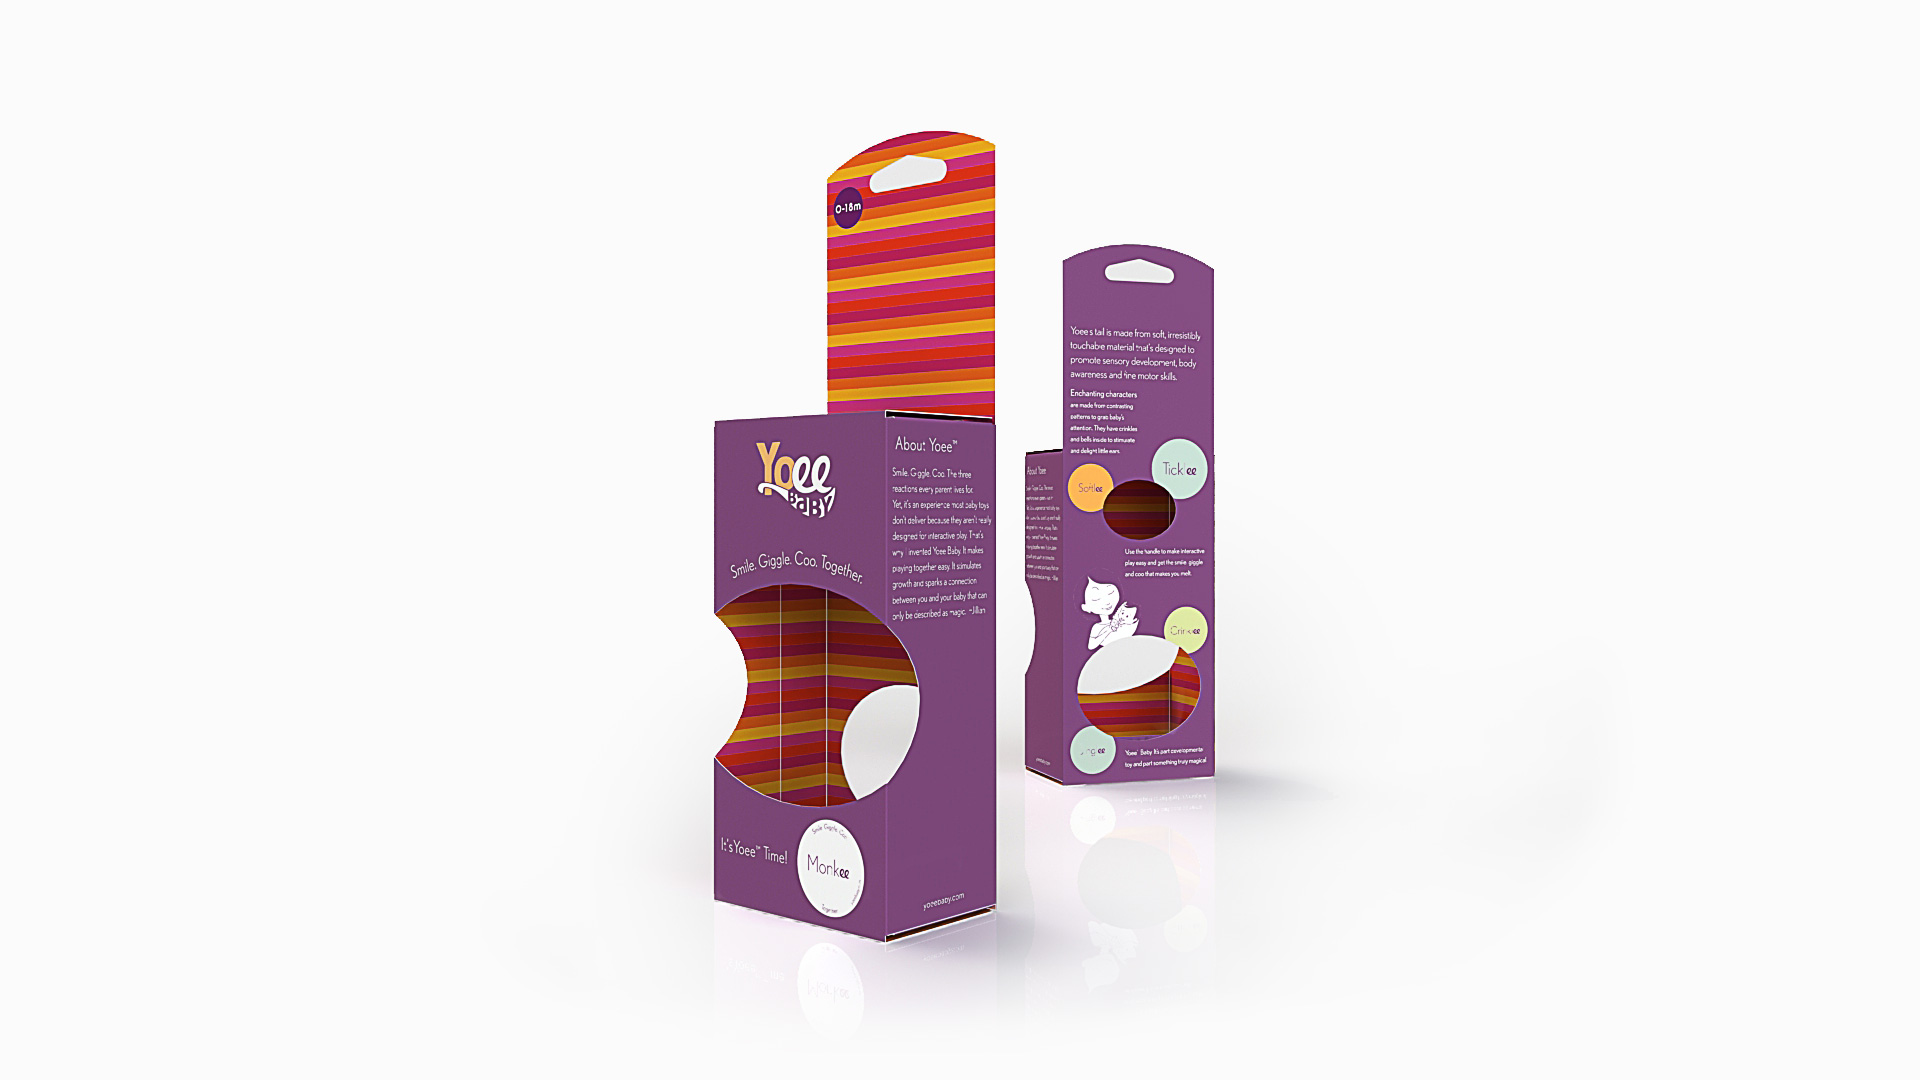 yoee package design